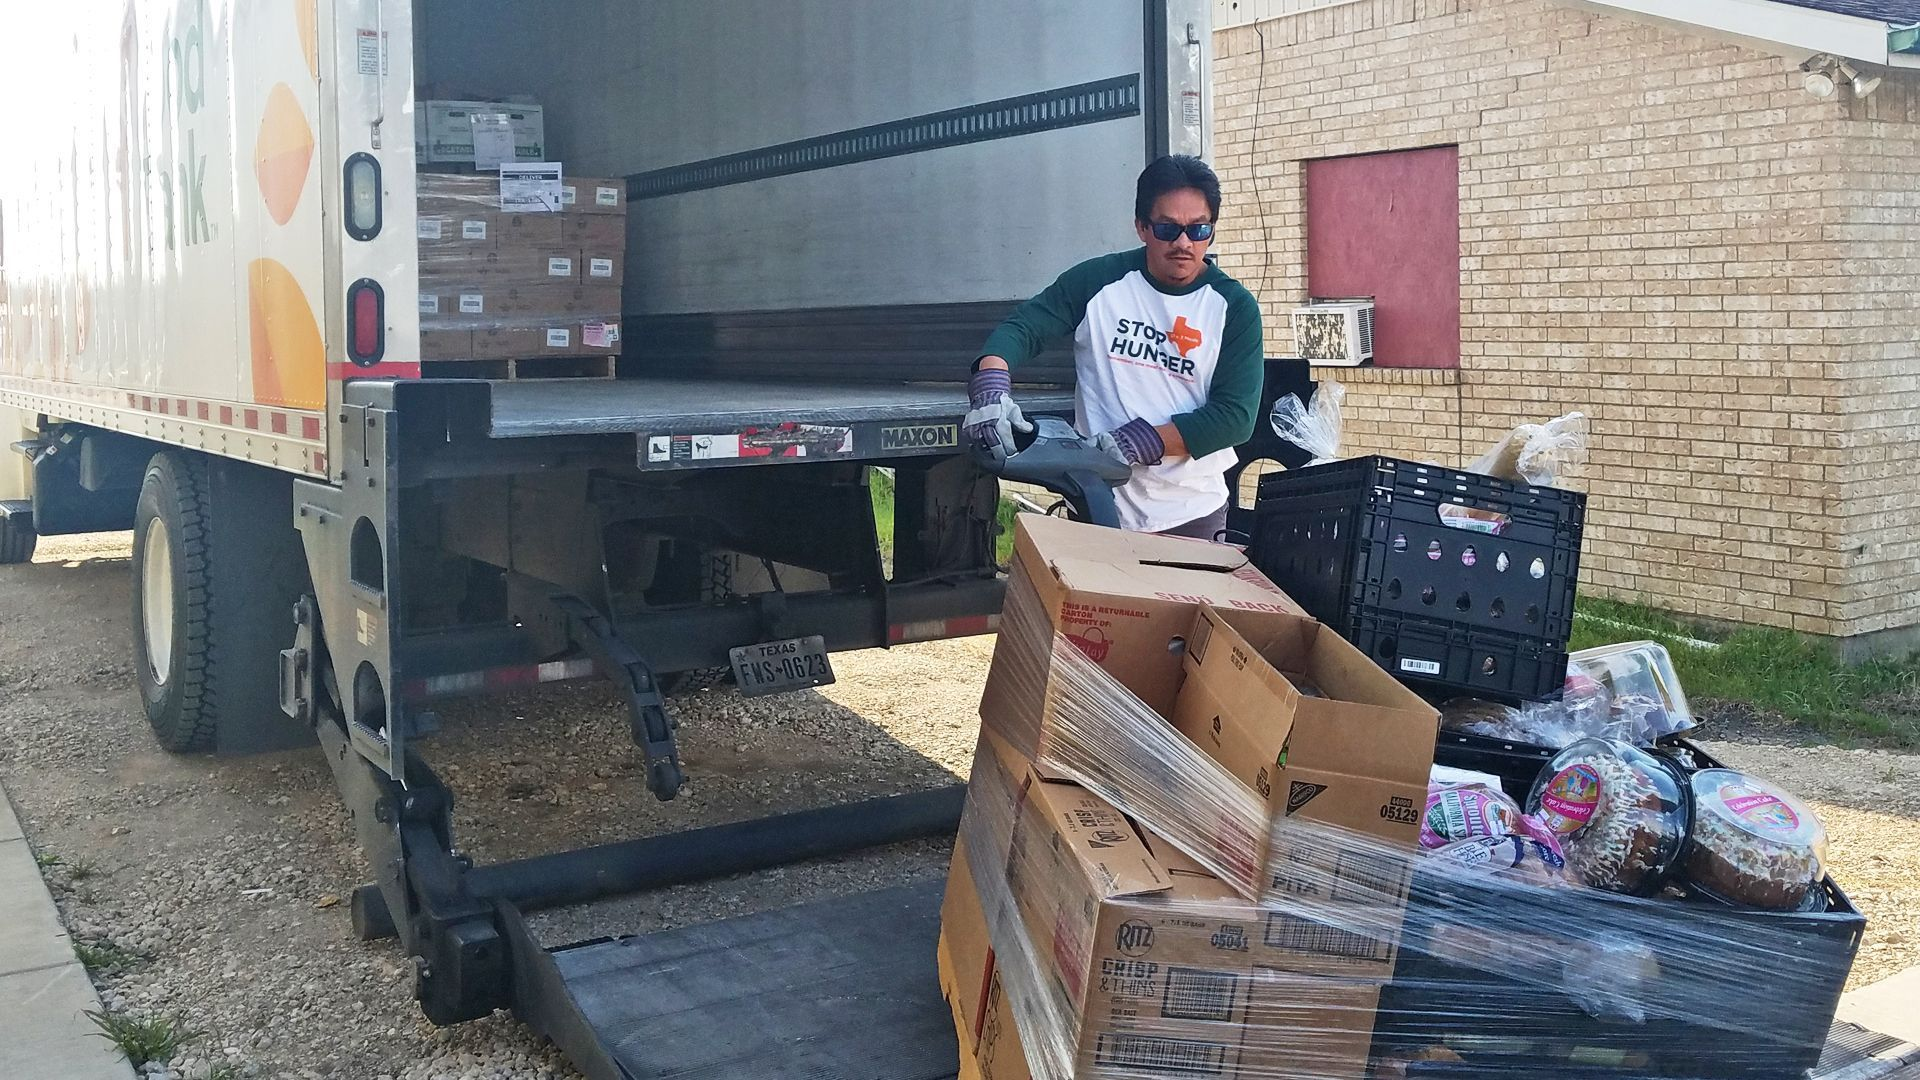 Amazing grace food pantry food pantry fight hunger